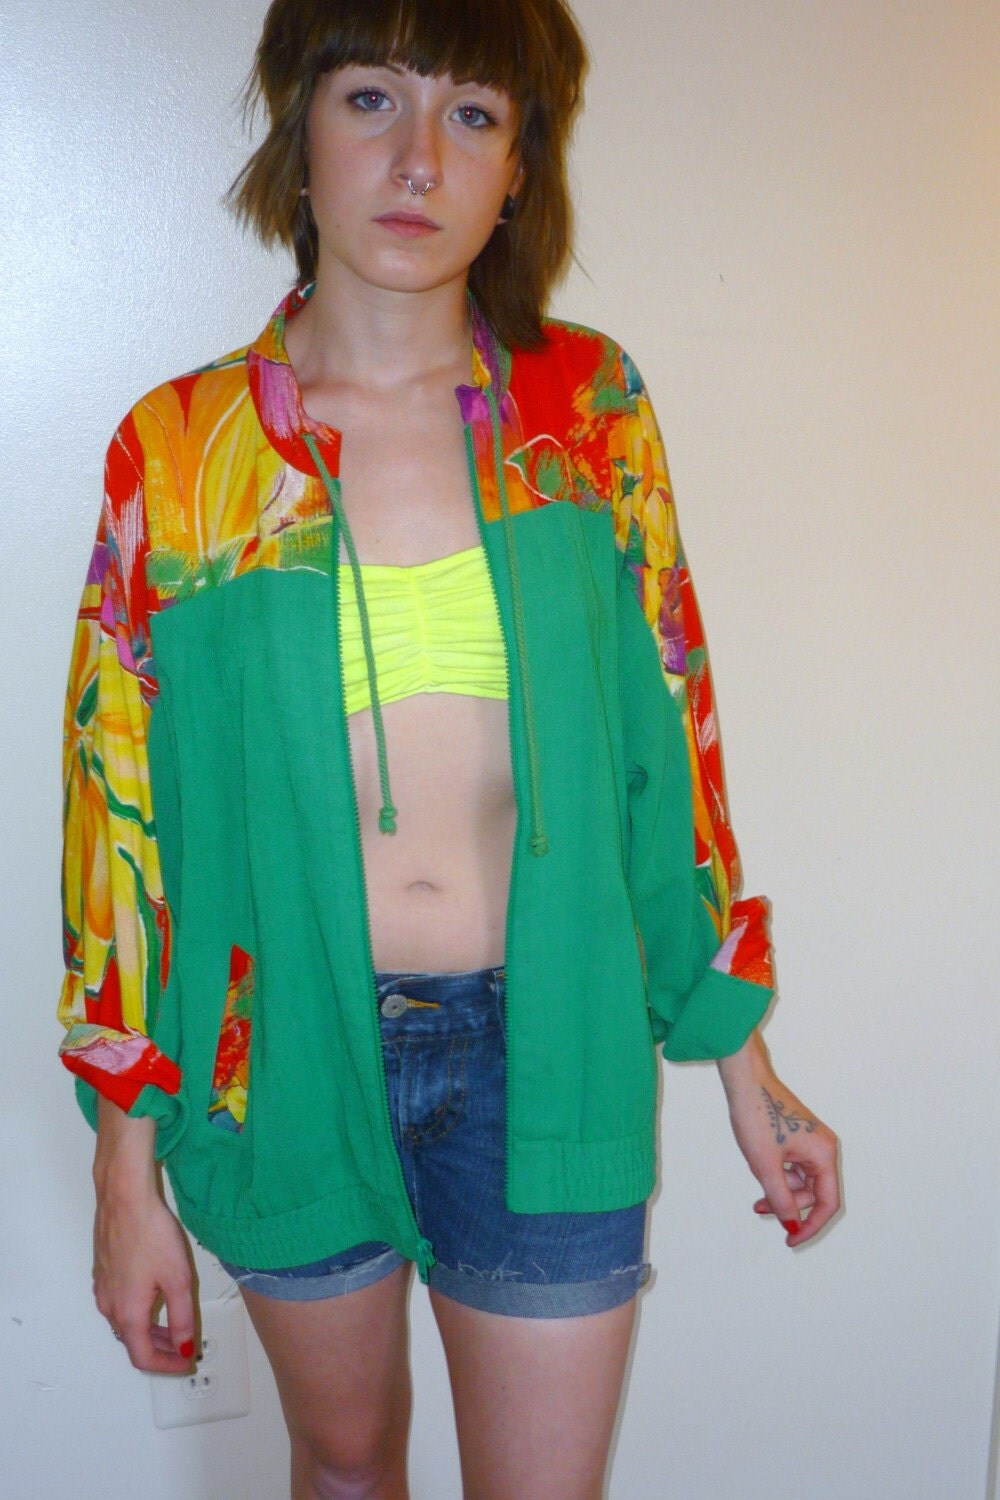 Tropic Jacket by GoddessVintage on Etsy